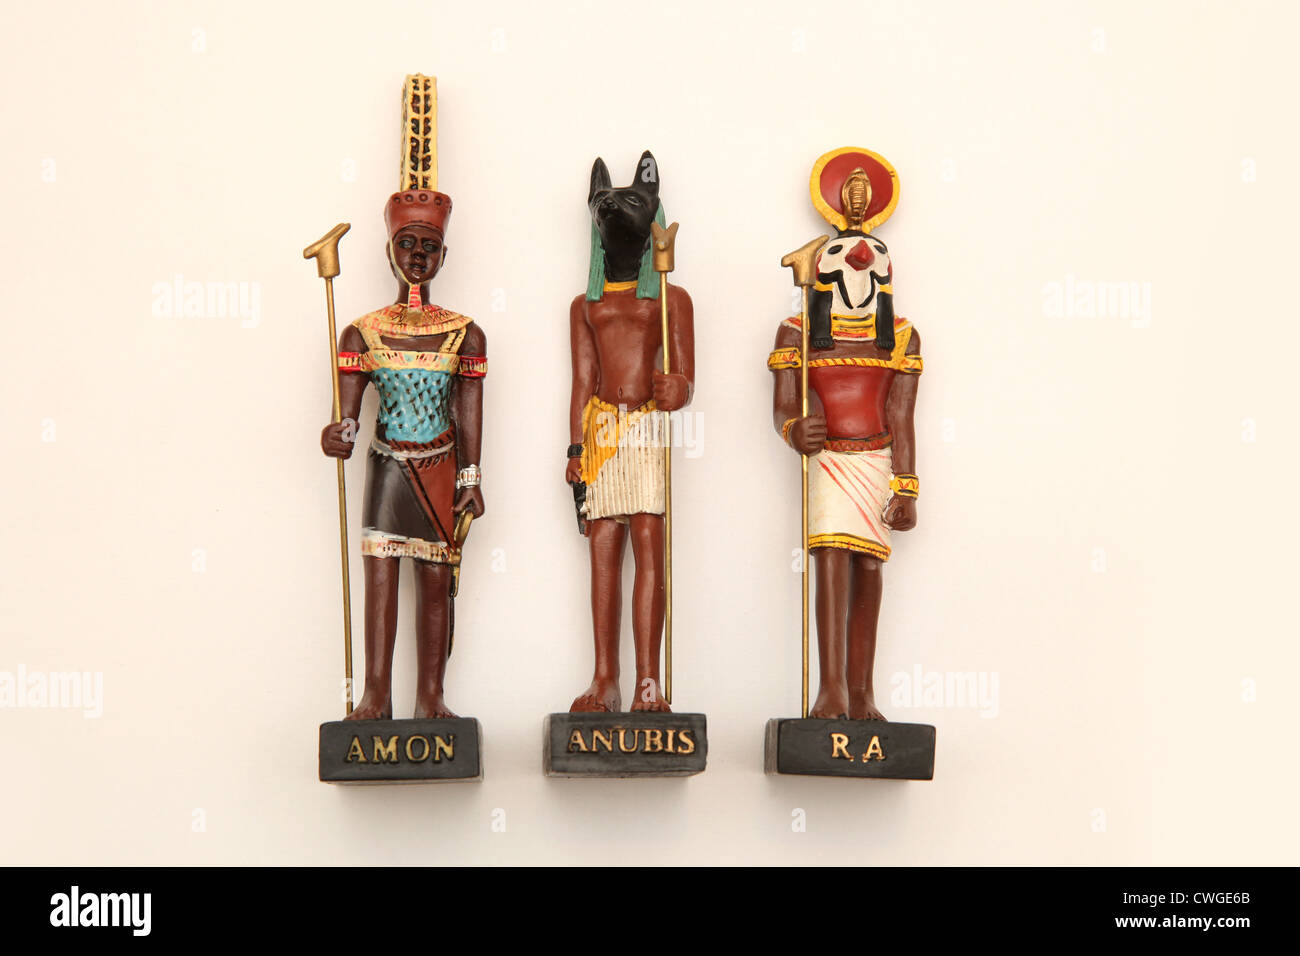 Collectible Egyptian model figures, The Gods Anubis, Ra and Amon. - Stock Image